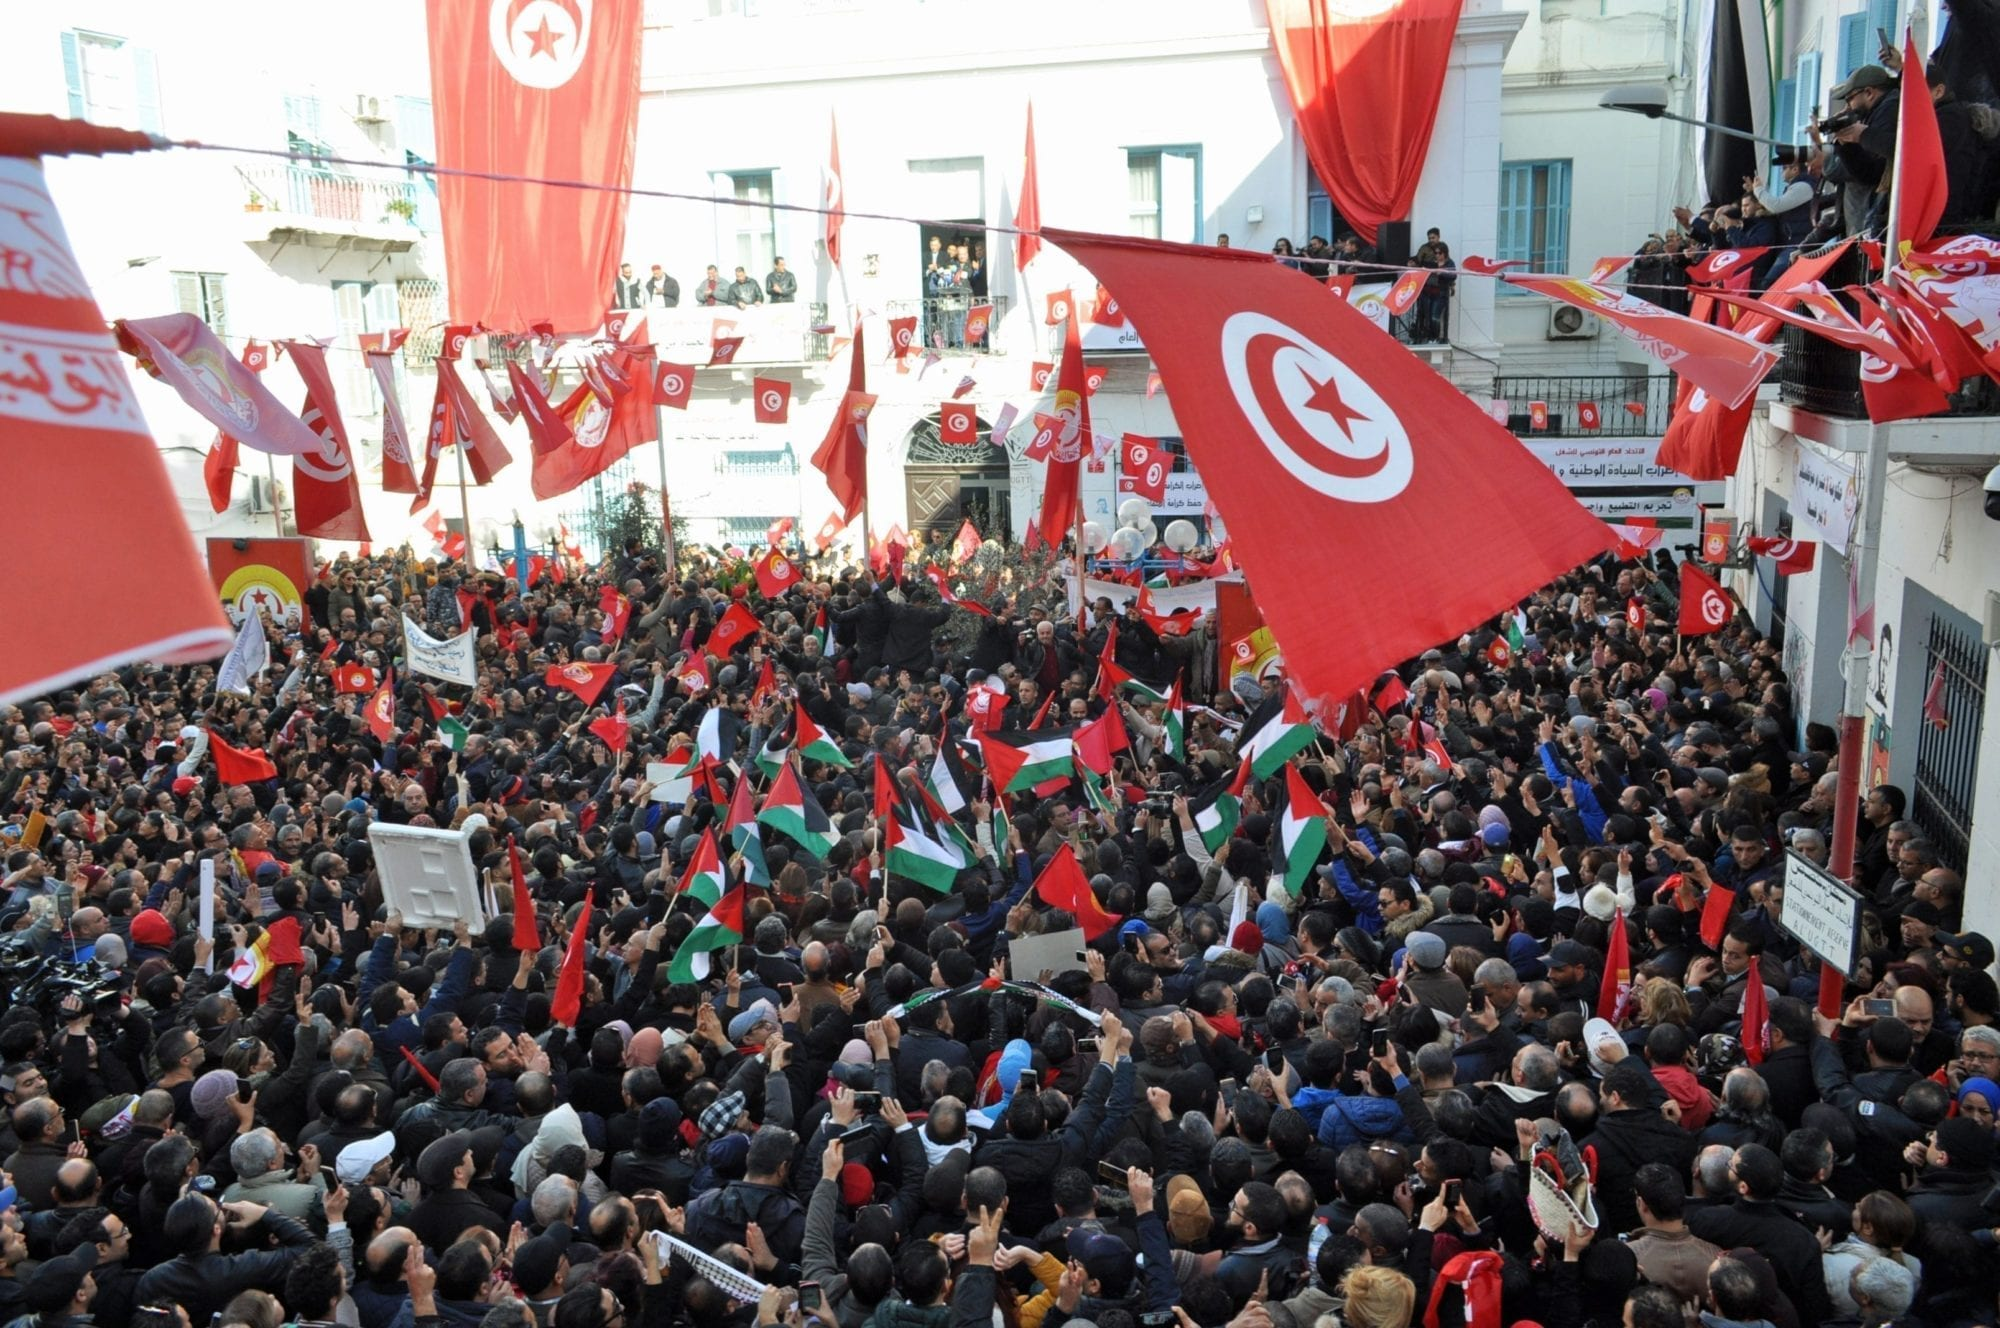 670,000 Public-Sector Workers Strike in Tunisia